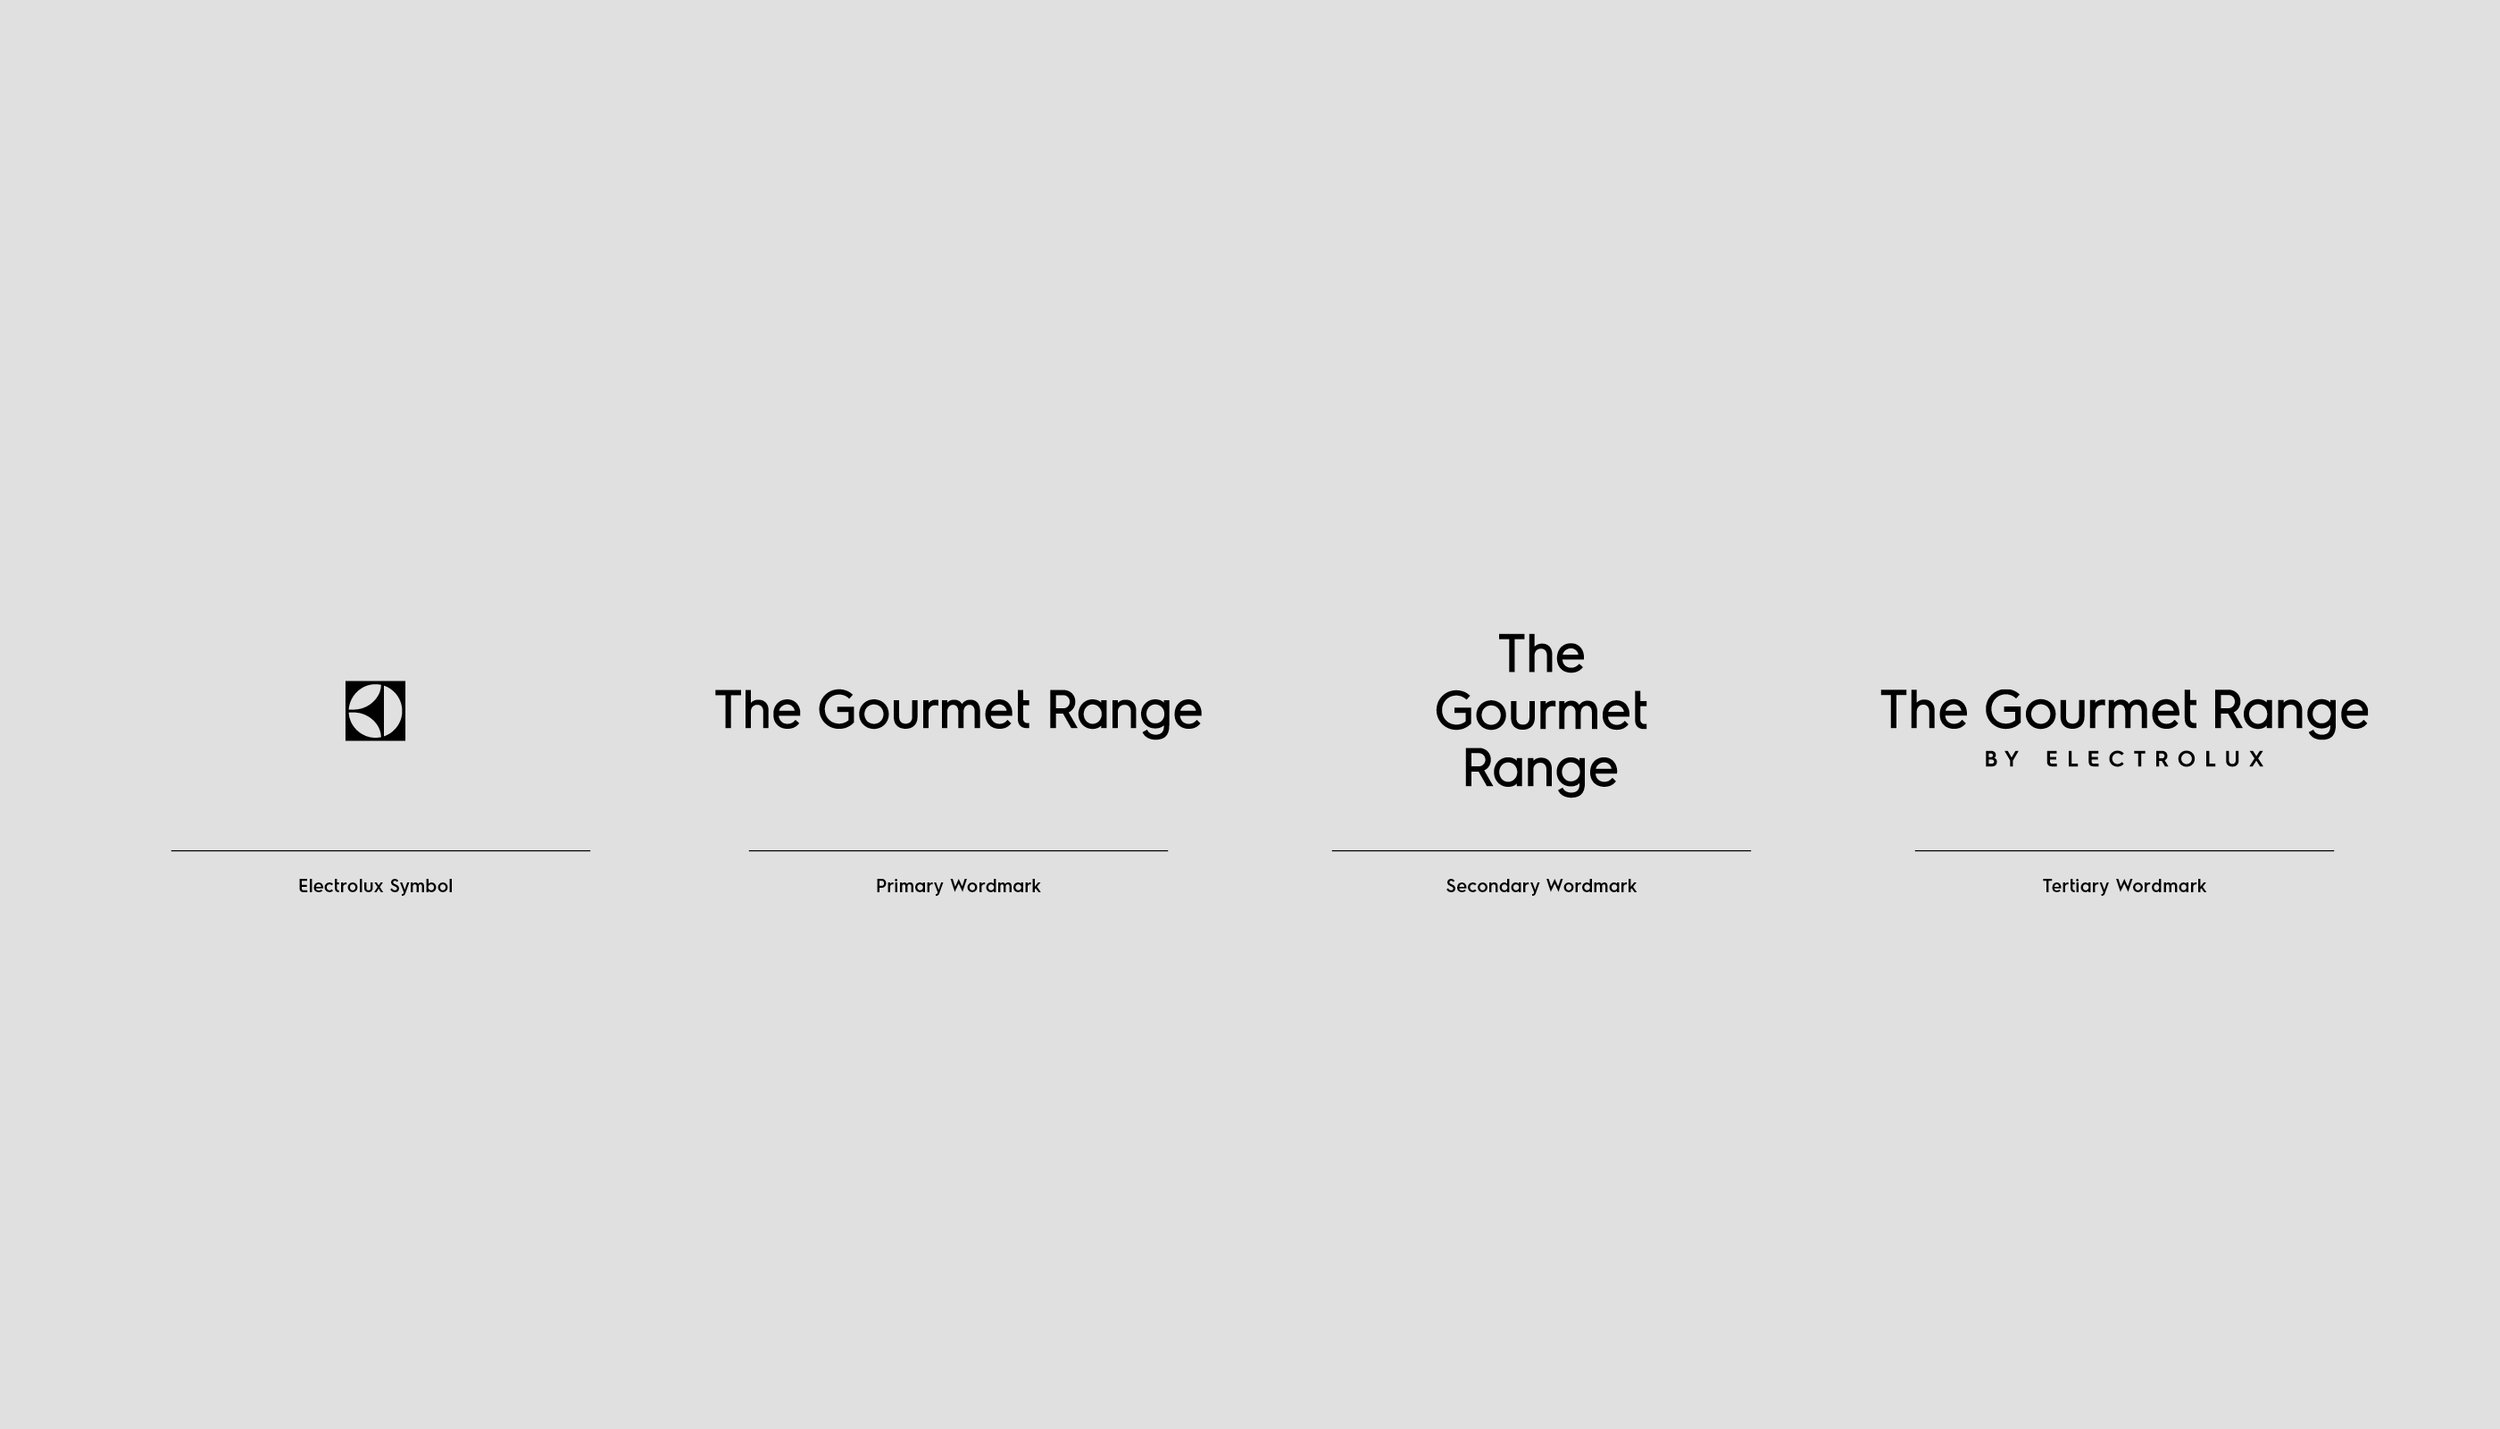 Electrolux Gourmet Range Brand Identity Anders Nord